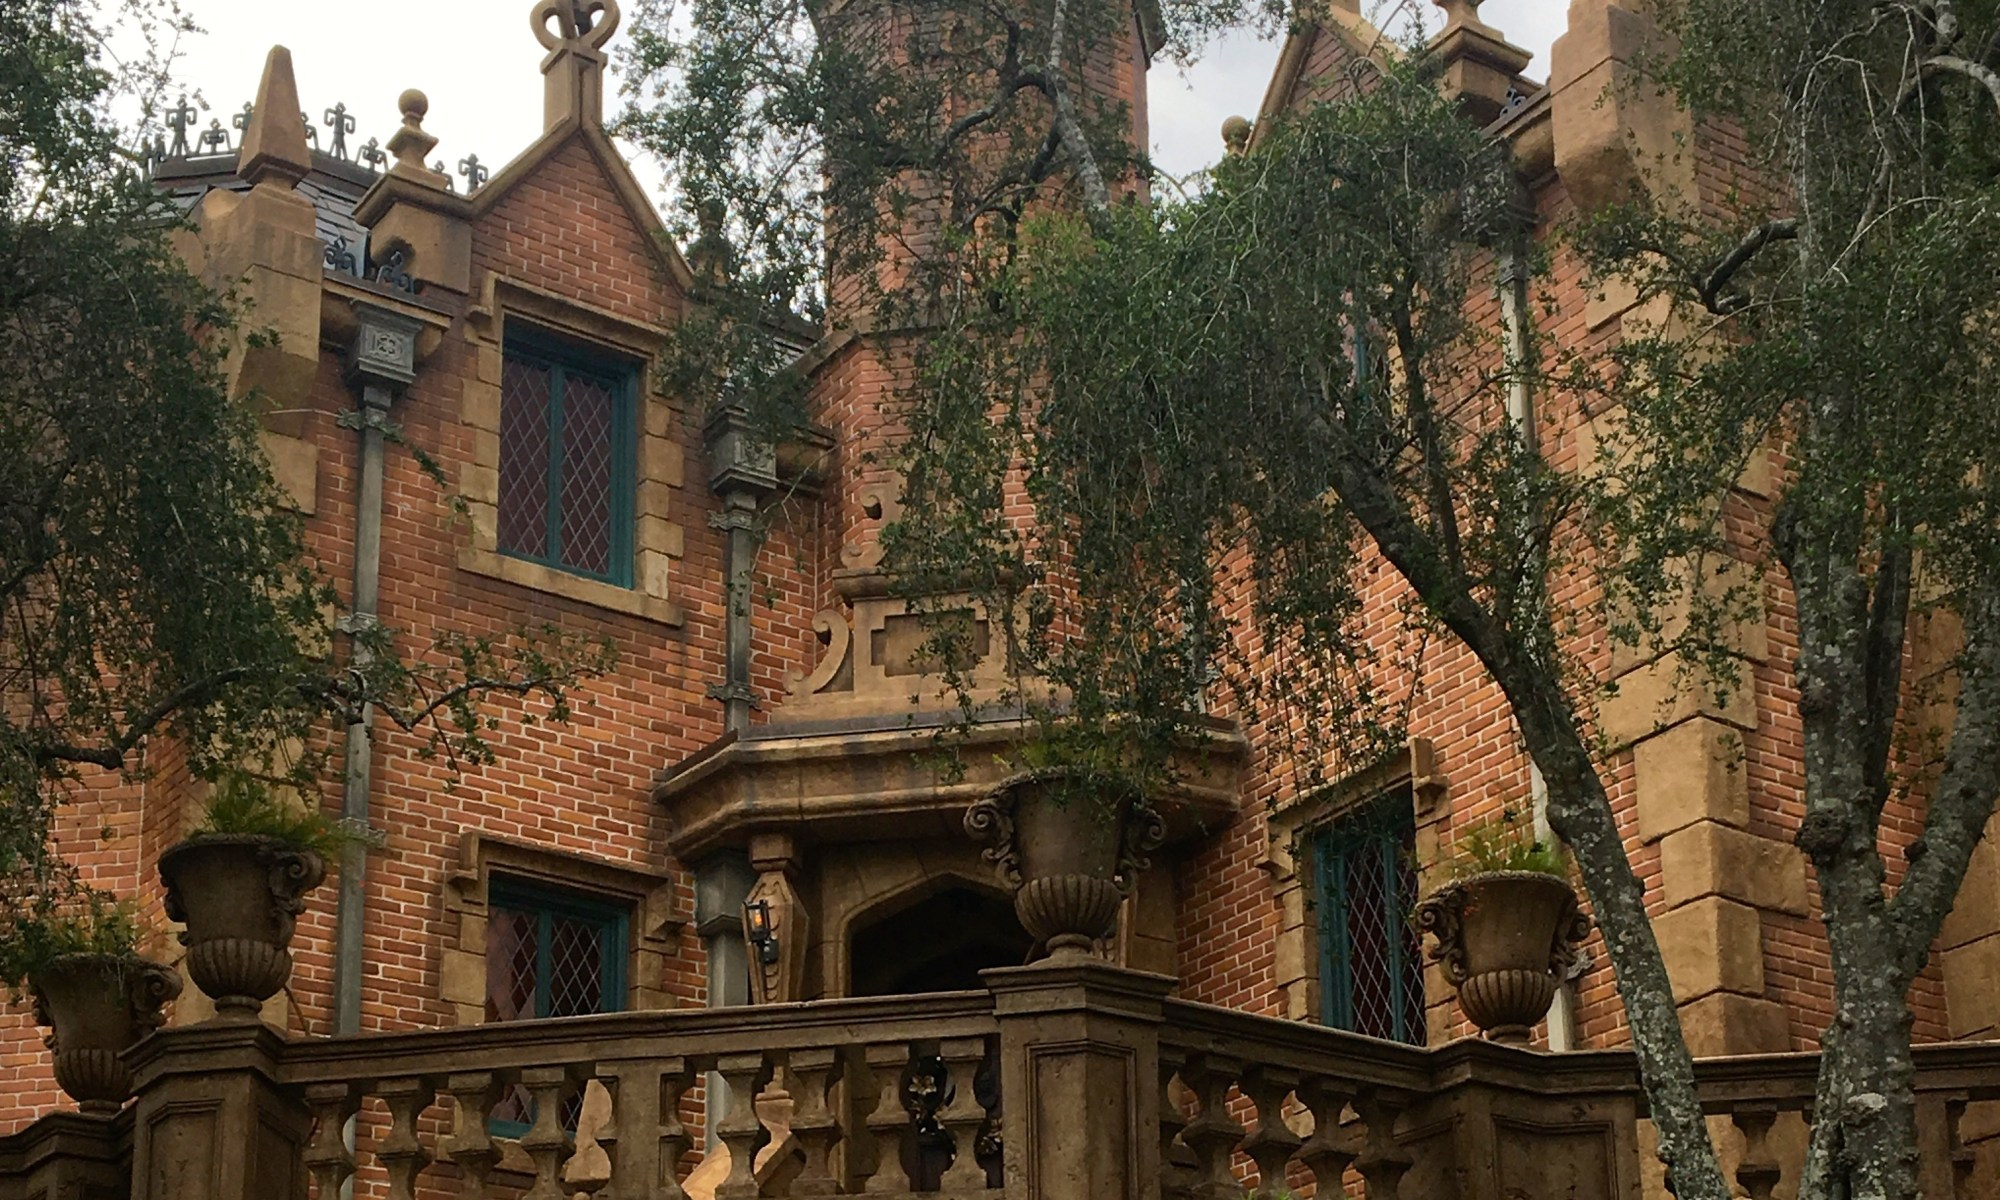 Walt Disney World, The Haunted Mansion, Magic Kingdom